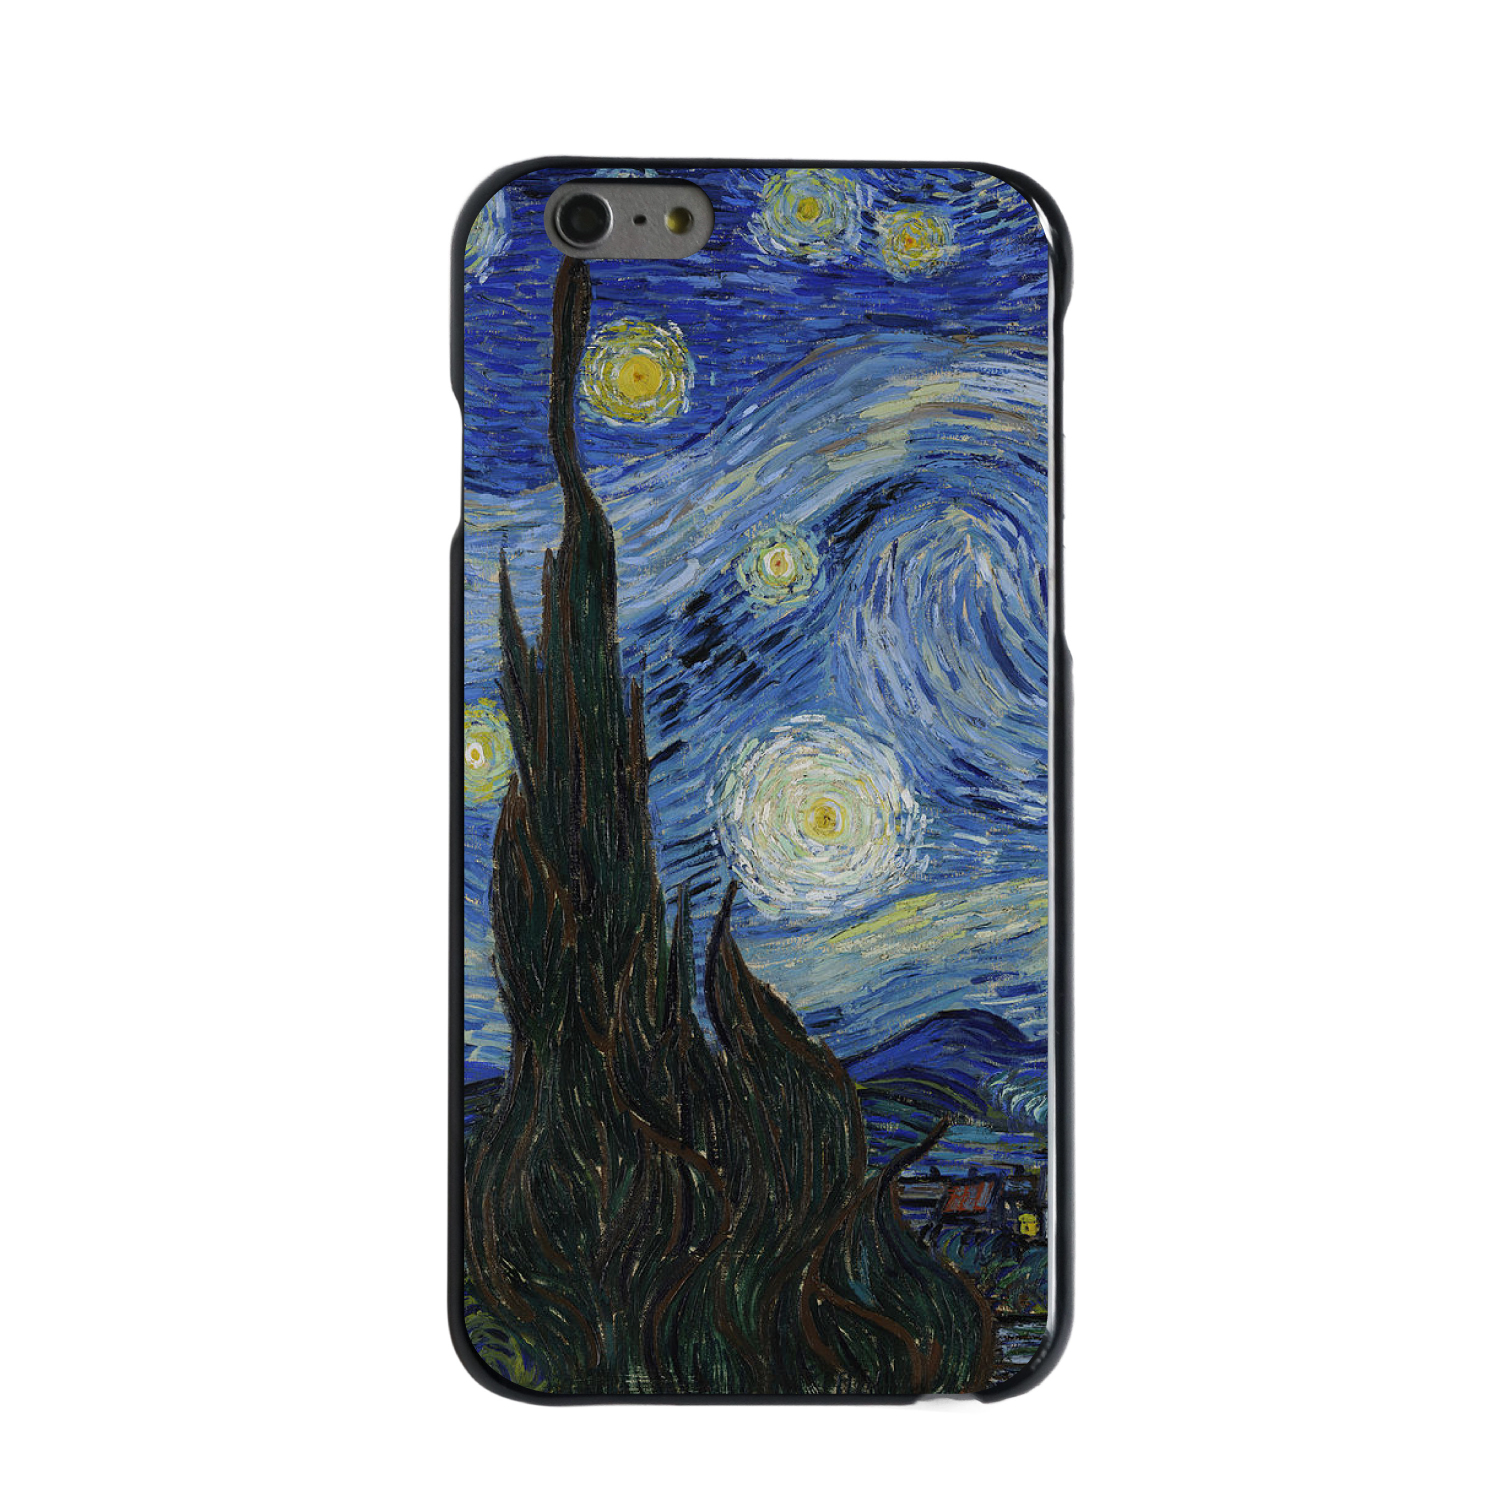 "CUSTOM Black Hard Plastic Snap-On Case for Apple iPhone 6 / 6S (4.7"" Screen) - Van Gogh Starry Night"